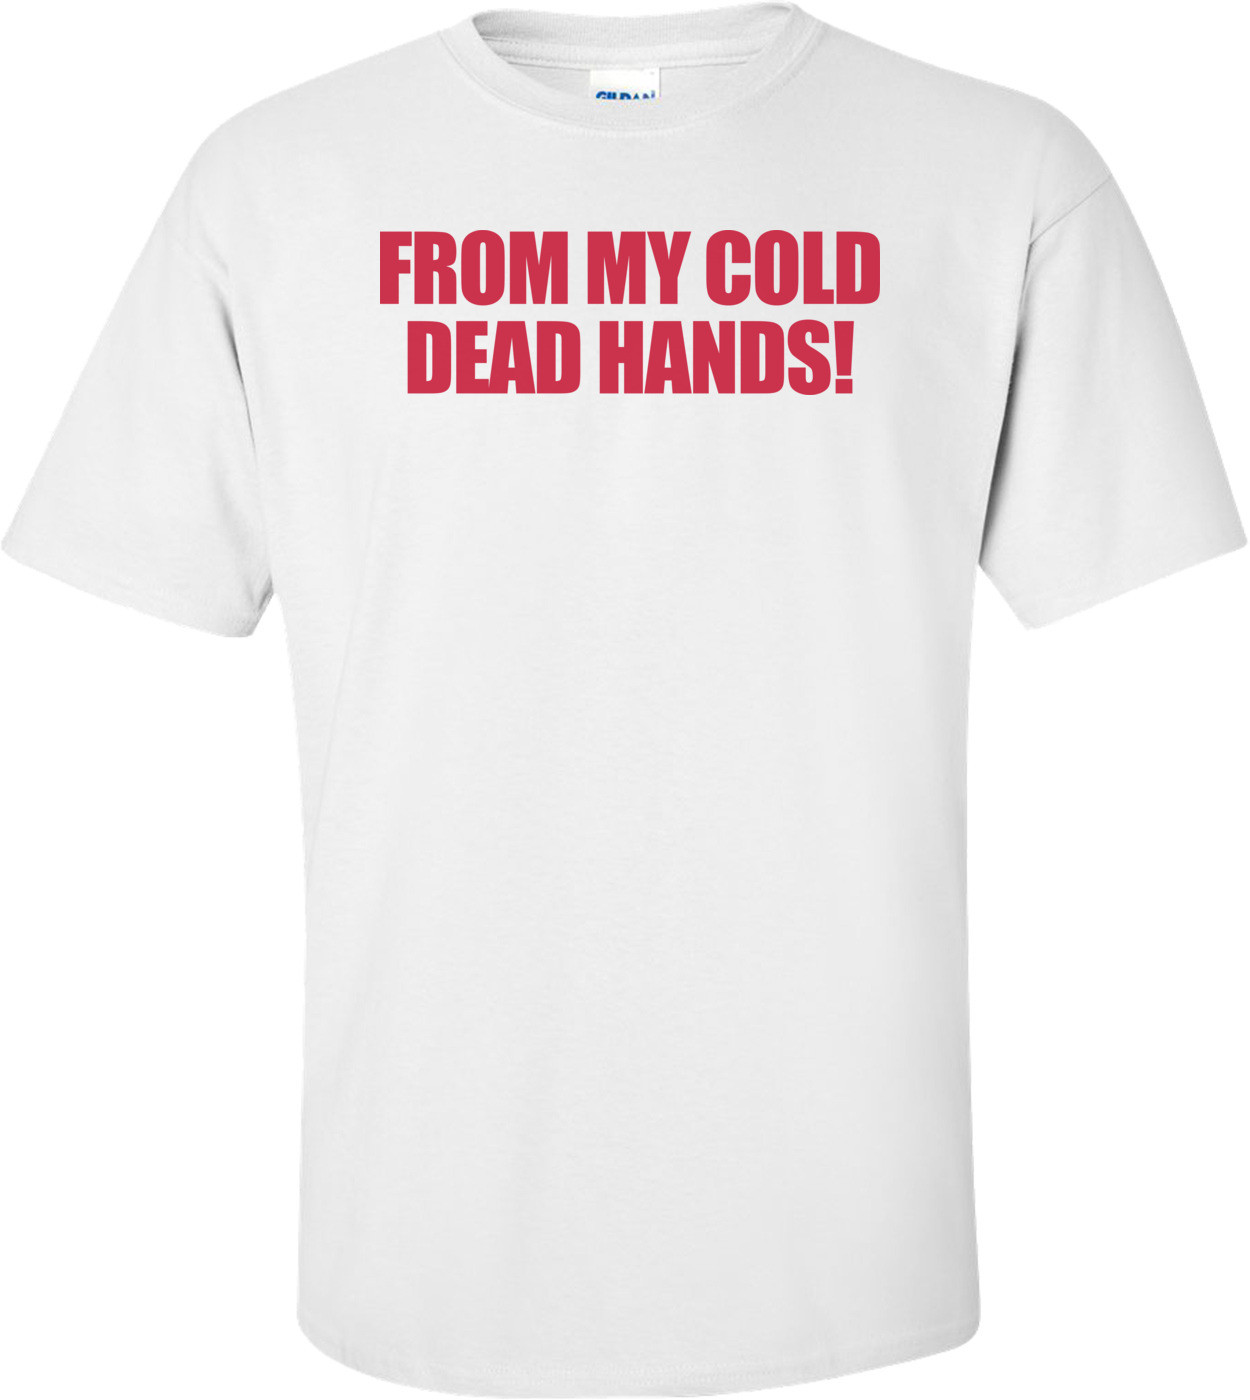 From My Cold Dead Hands Pro-gun T-shirt